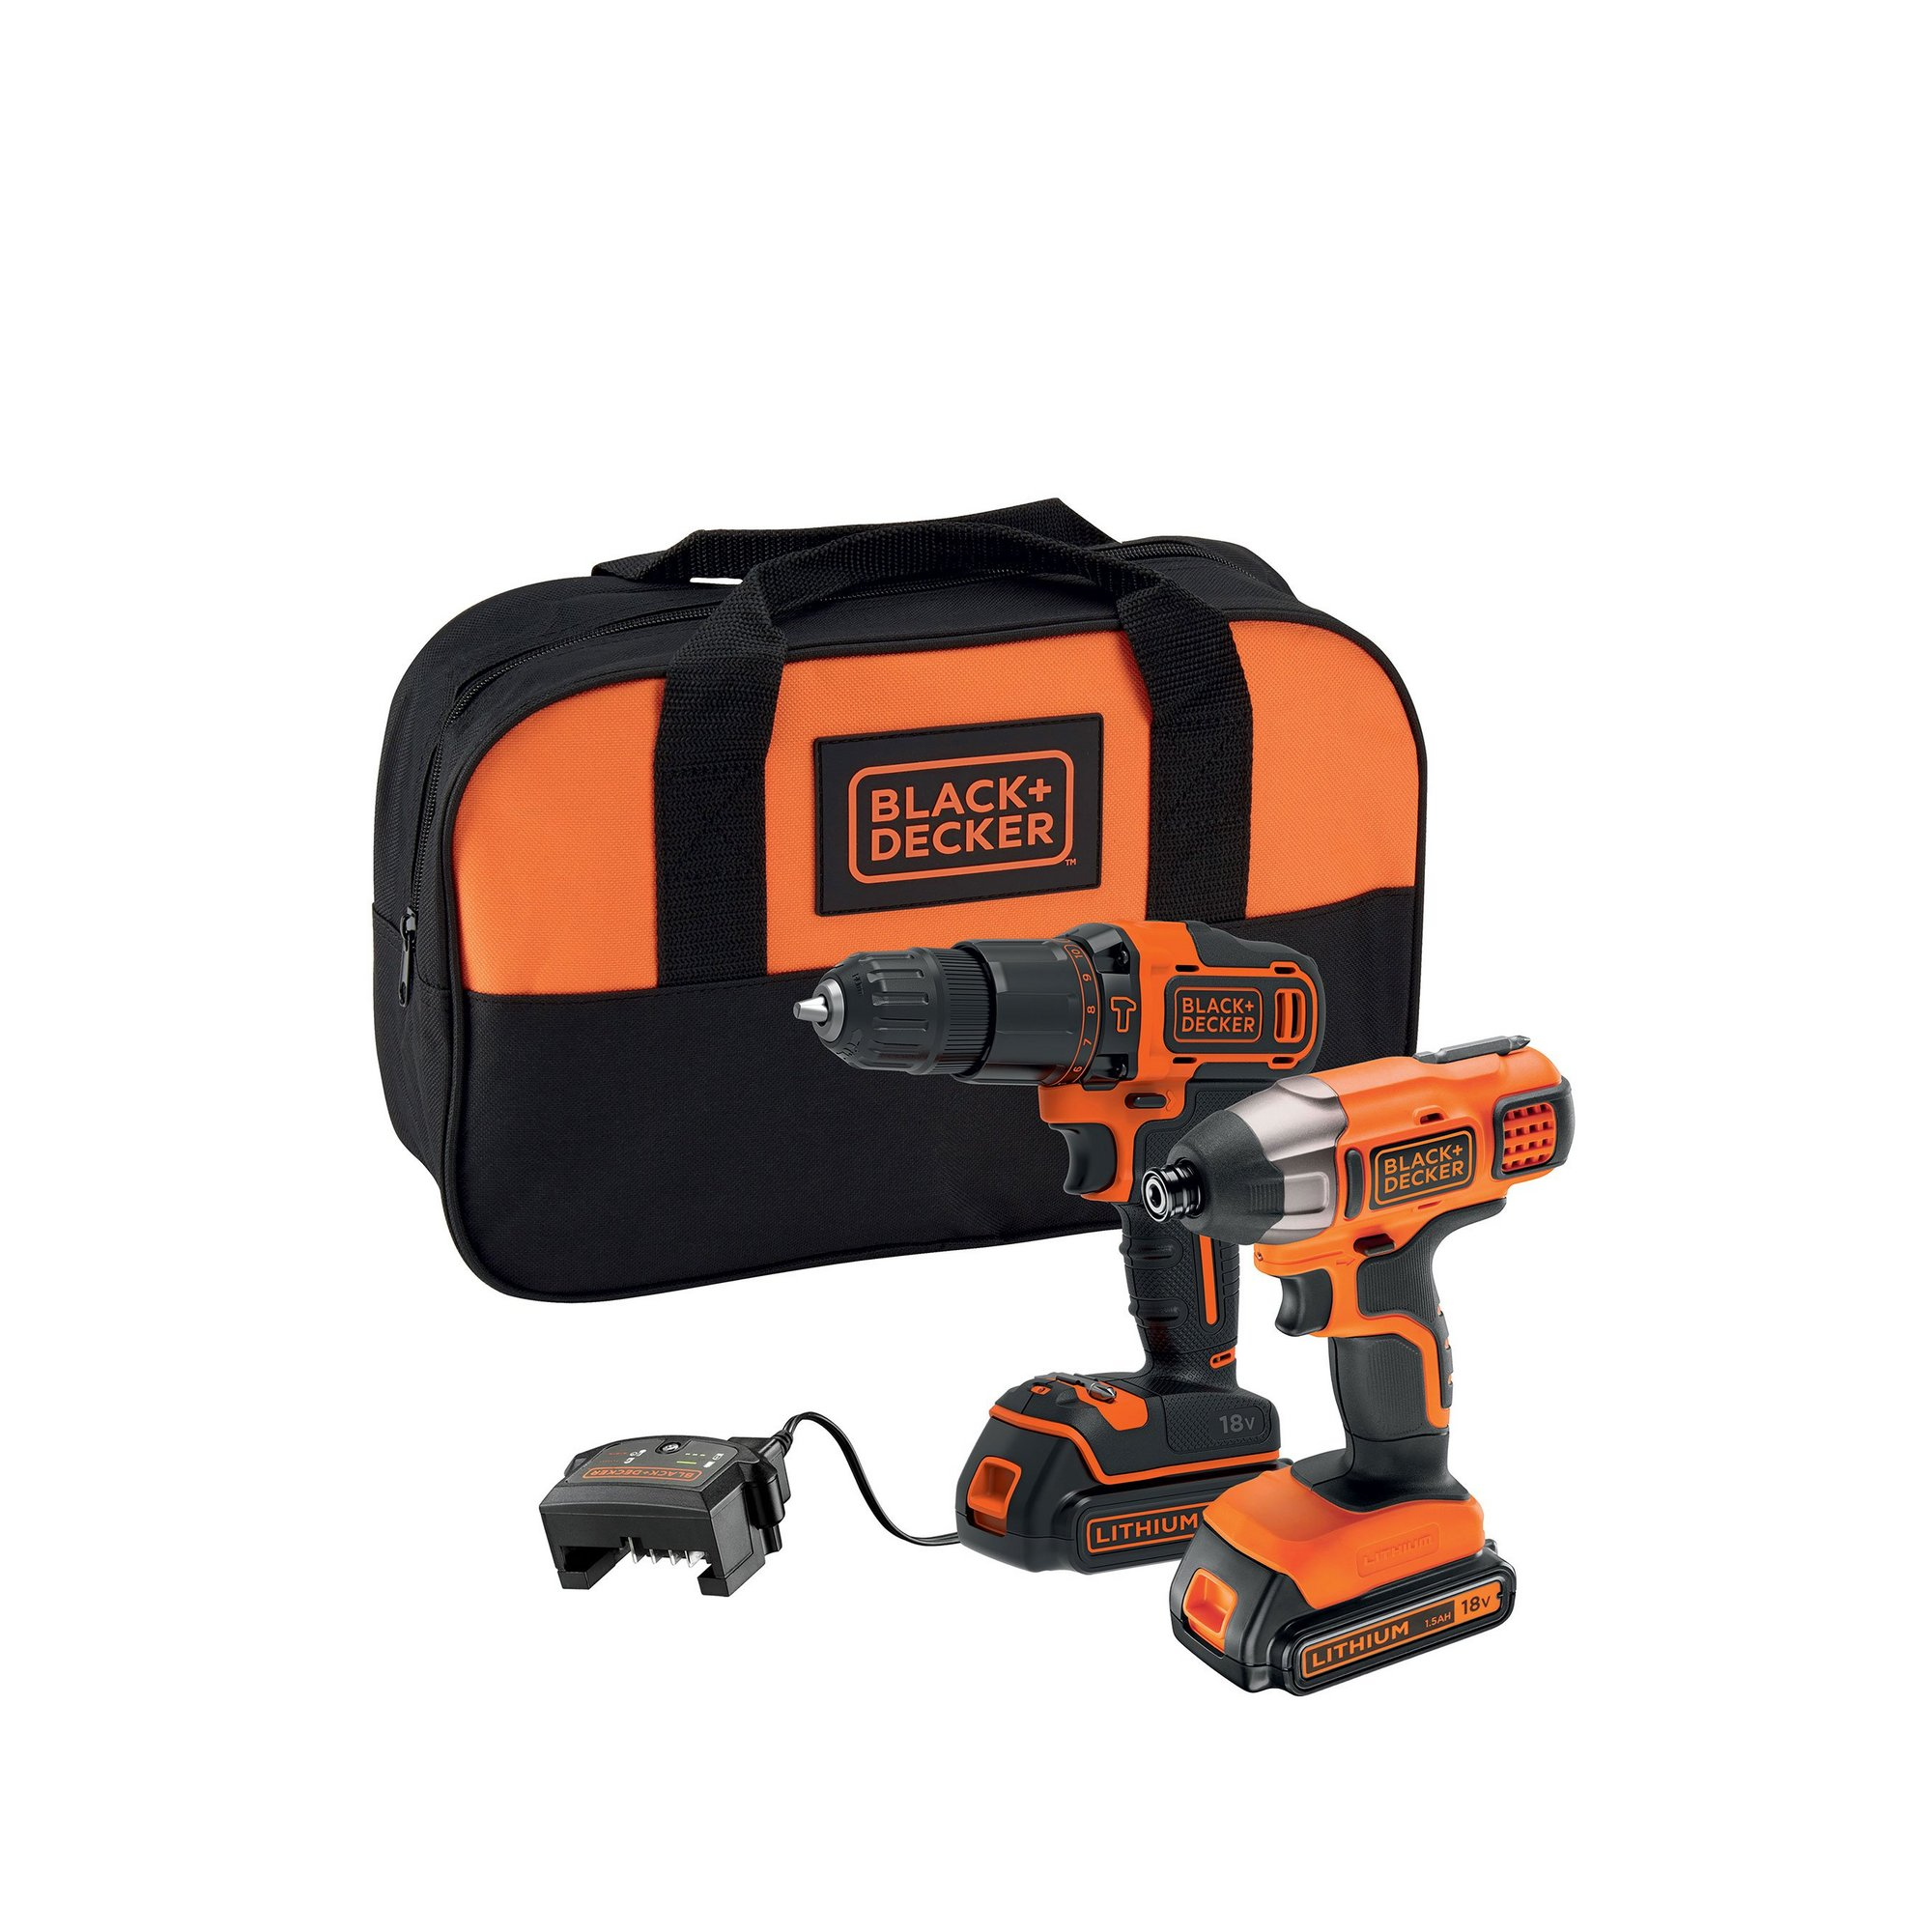 Image of Black and Decker 18v Cordless Combi Drill and Impact Driver